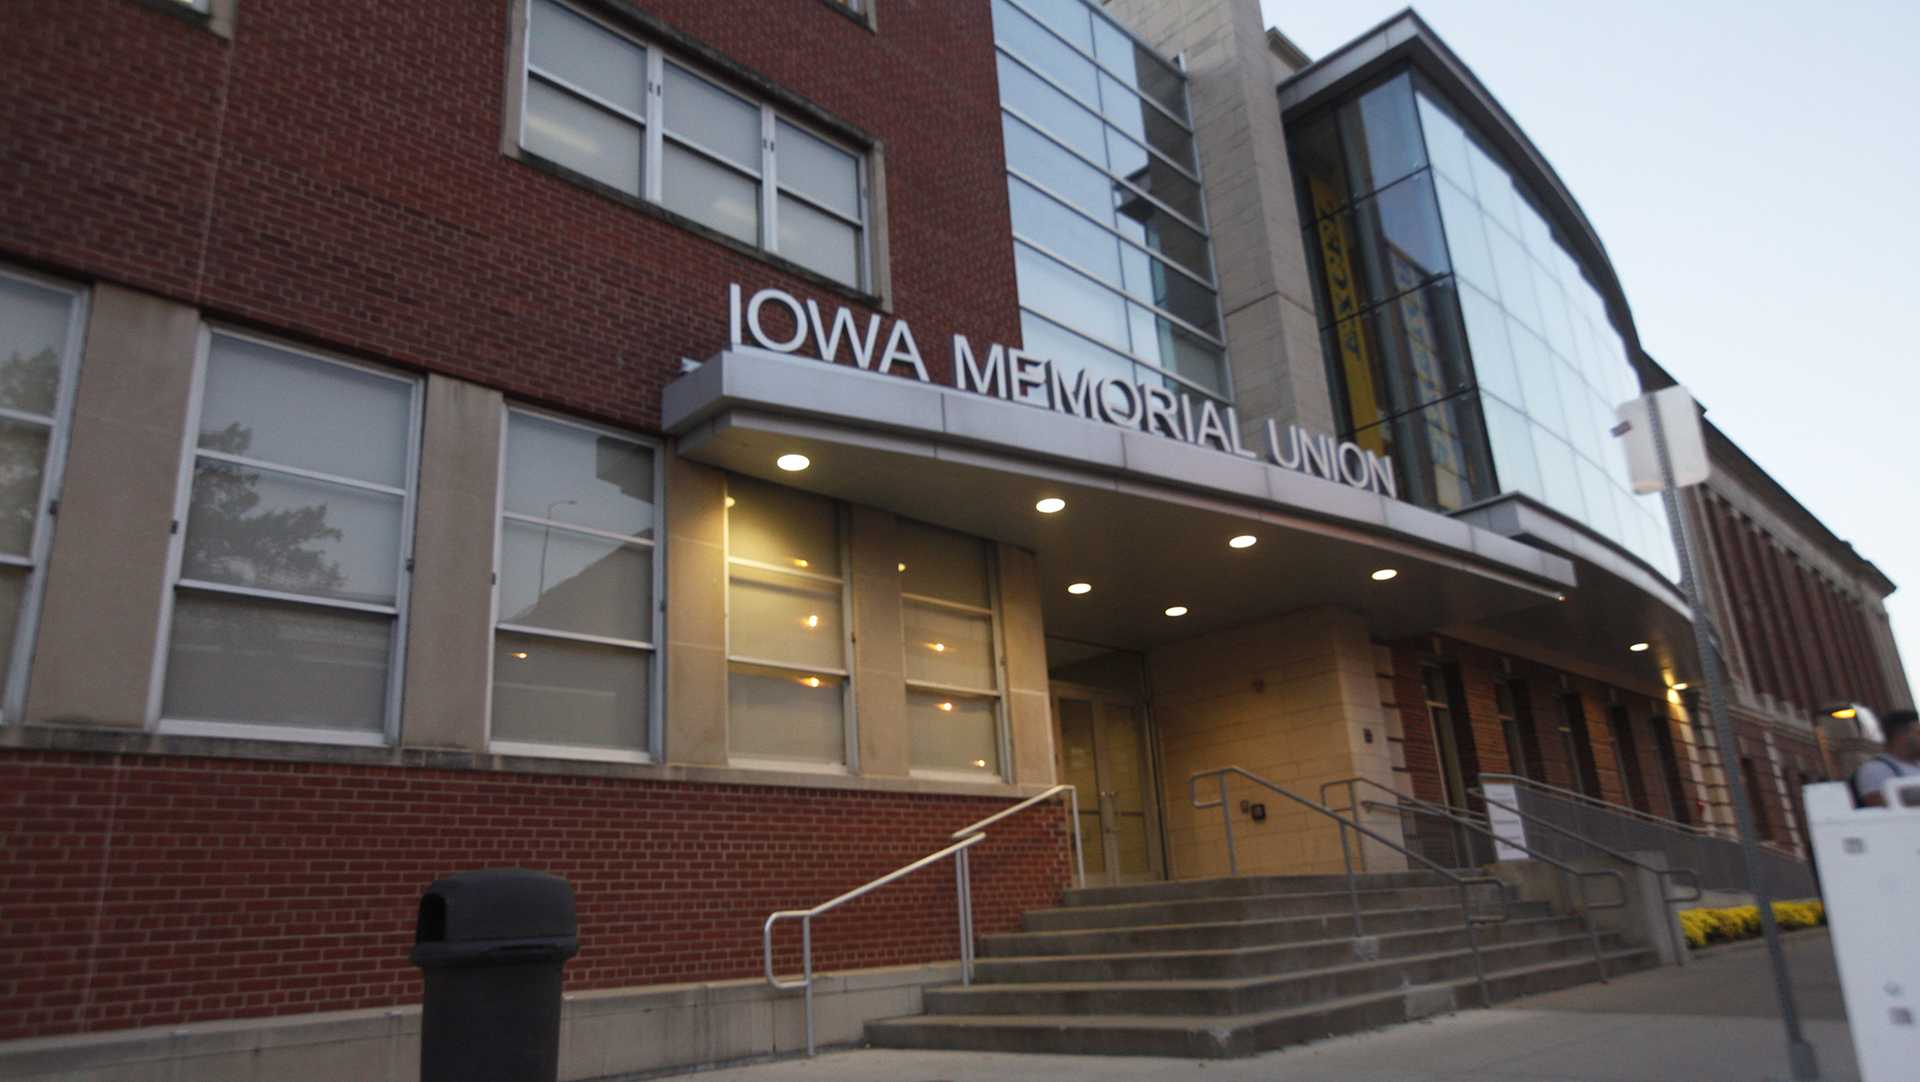 IMU Meeting Rooms and Iowa House Hotel Redesigned for Iowa Centric Looks